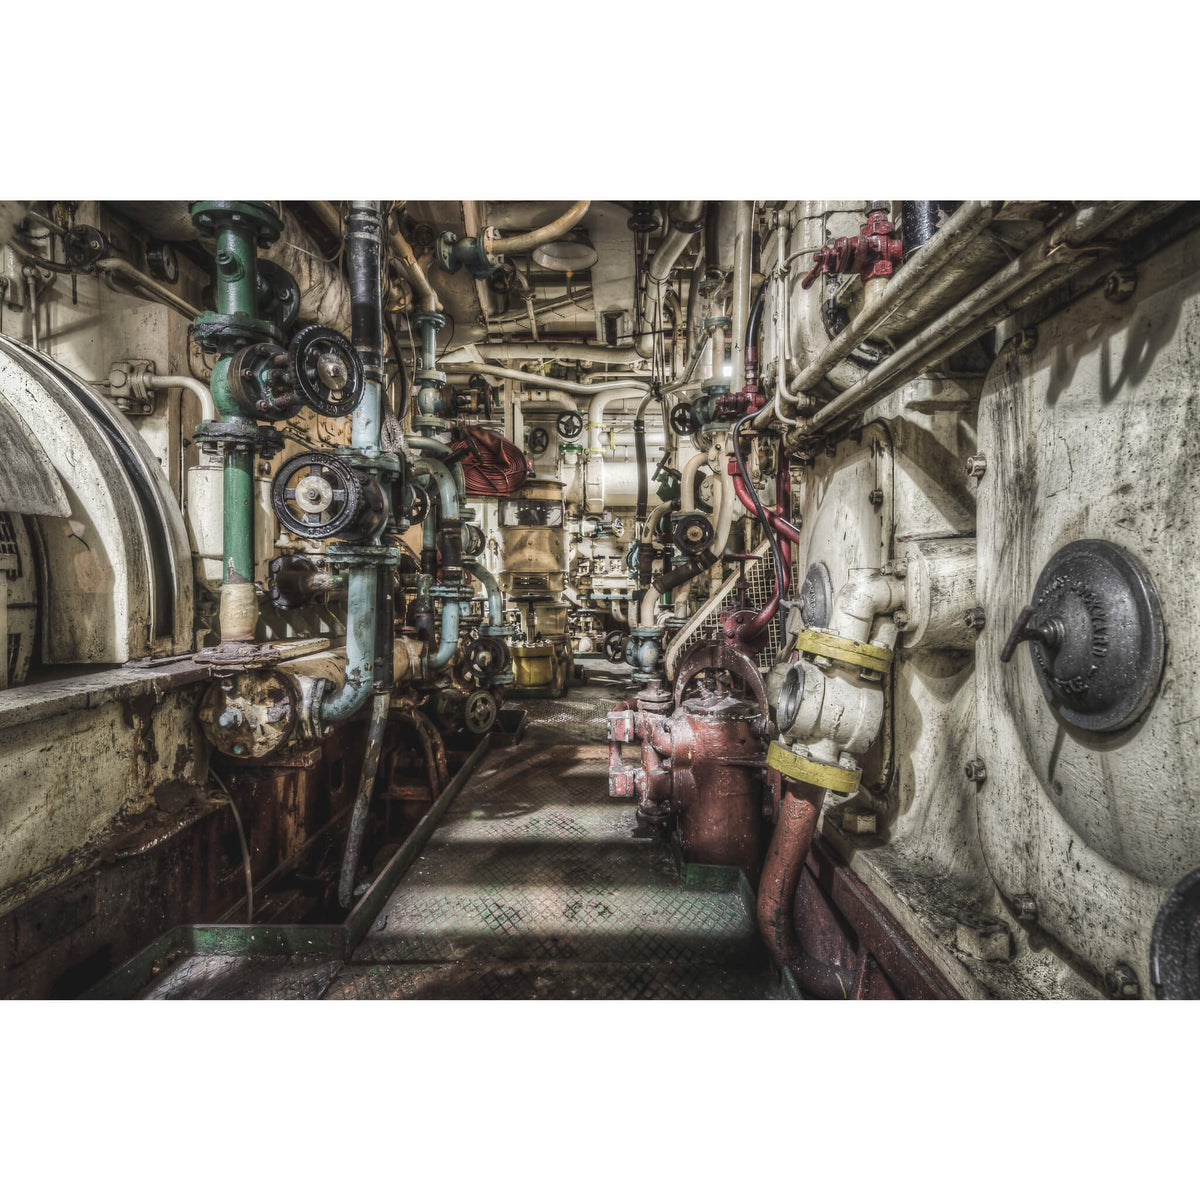 Main Engine | MV Cape Don Fine Art Print - Lost Collective Shop